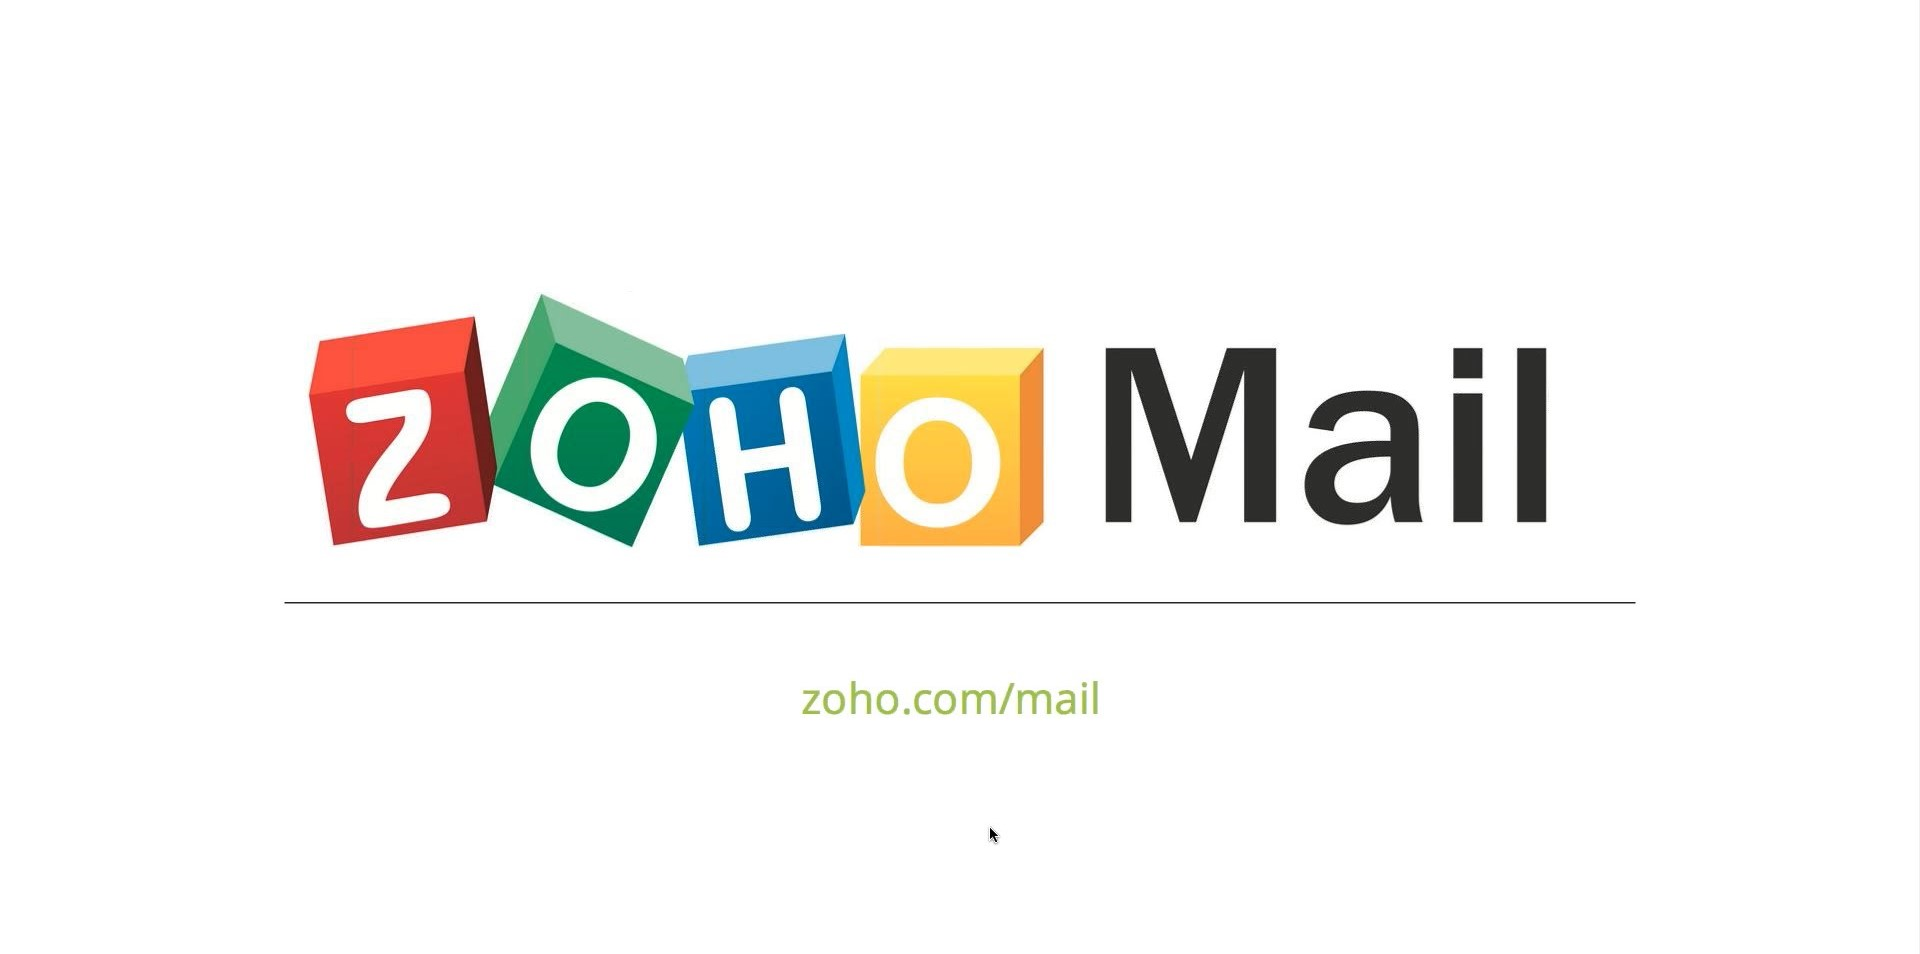 zohomail-web tools for e-commerce